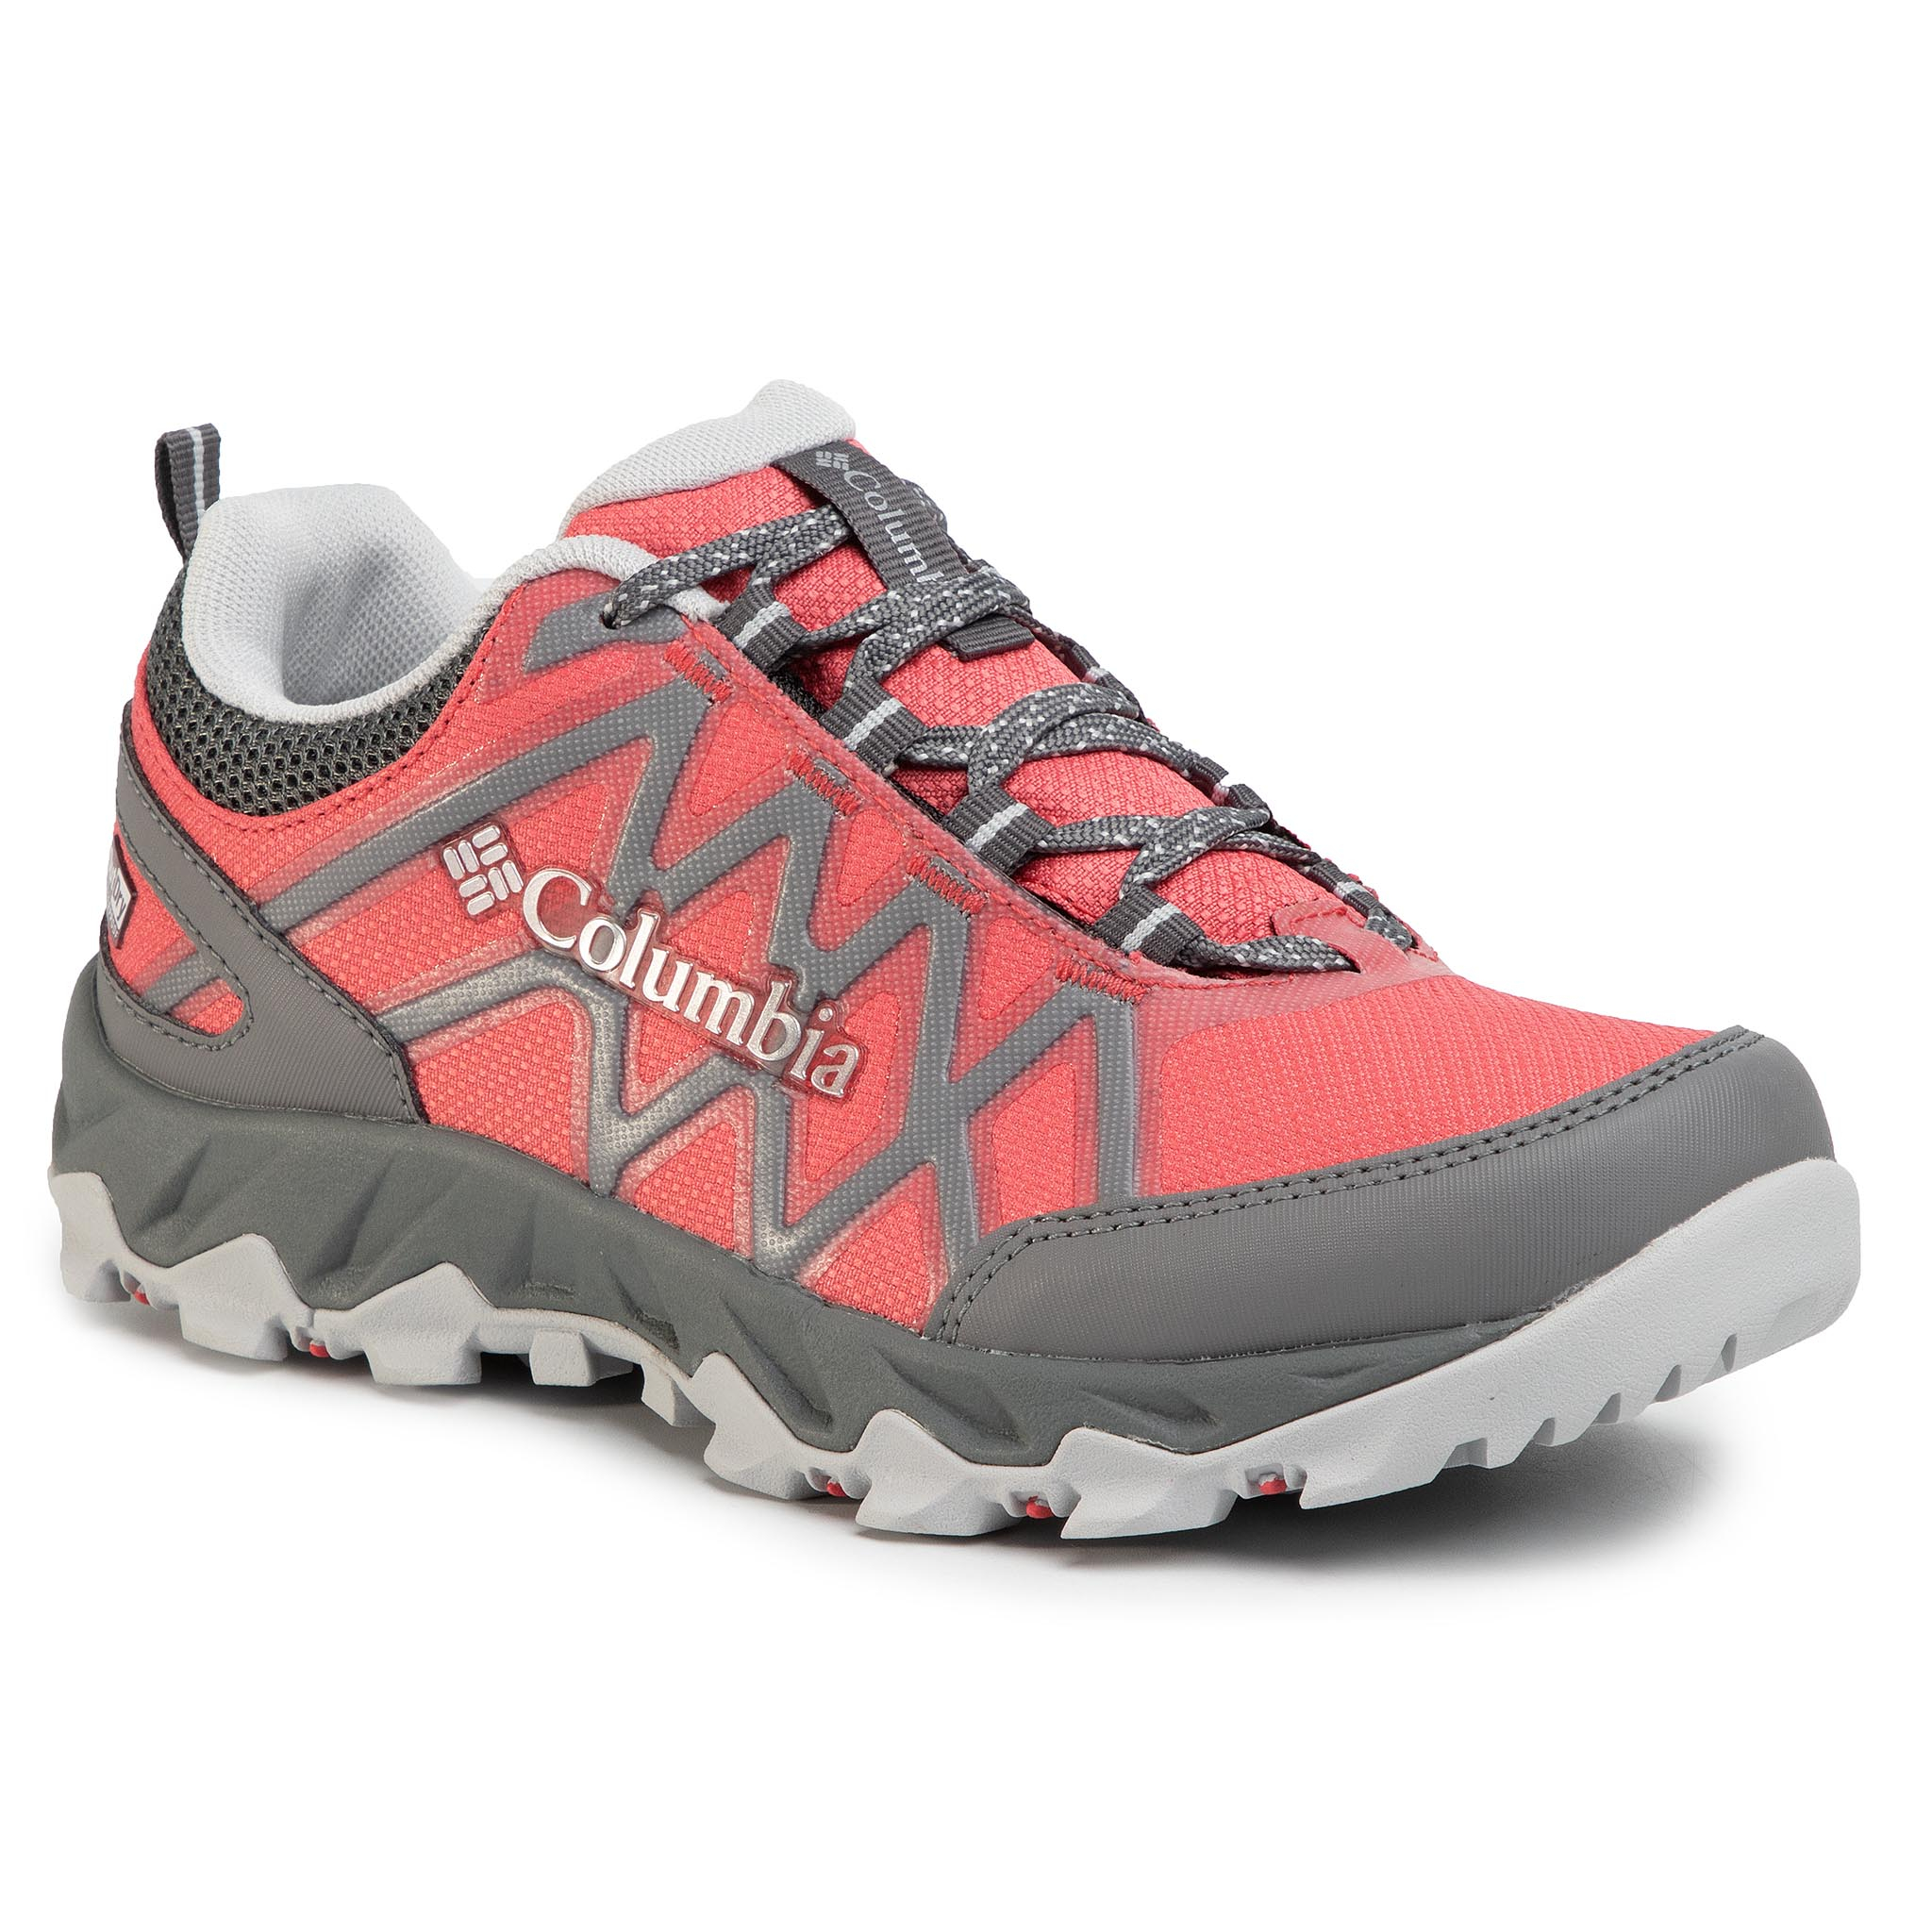 Trekkings Columbia - Peakfreak X2 Outdry Bl0829 Juicy/Pure Silver 608 imagine epantofi.ro 2021